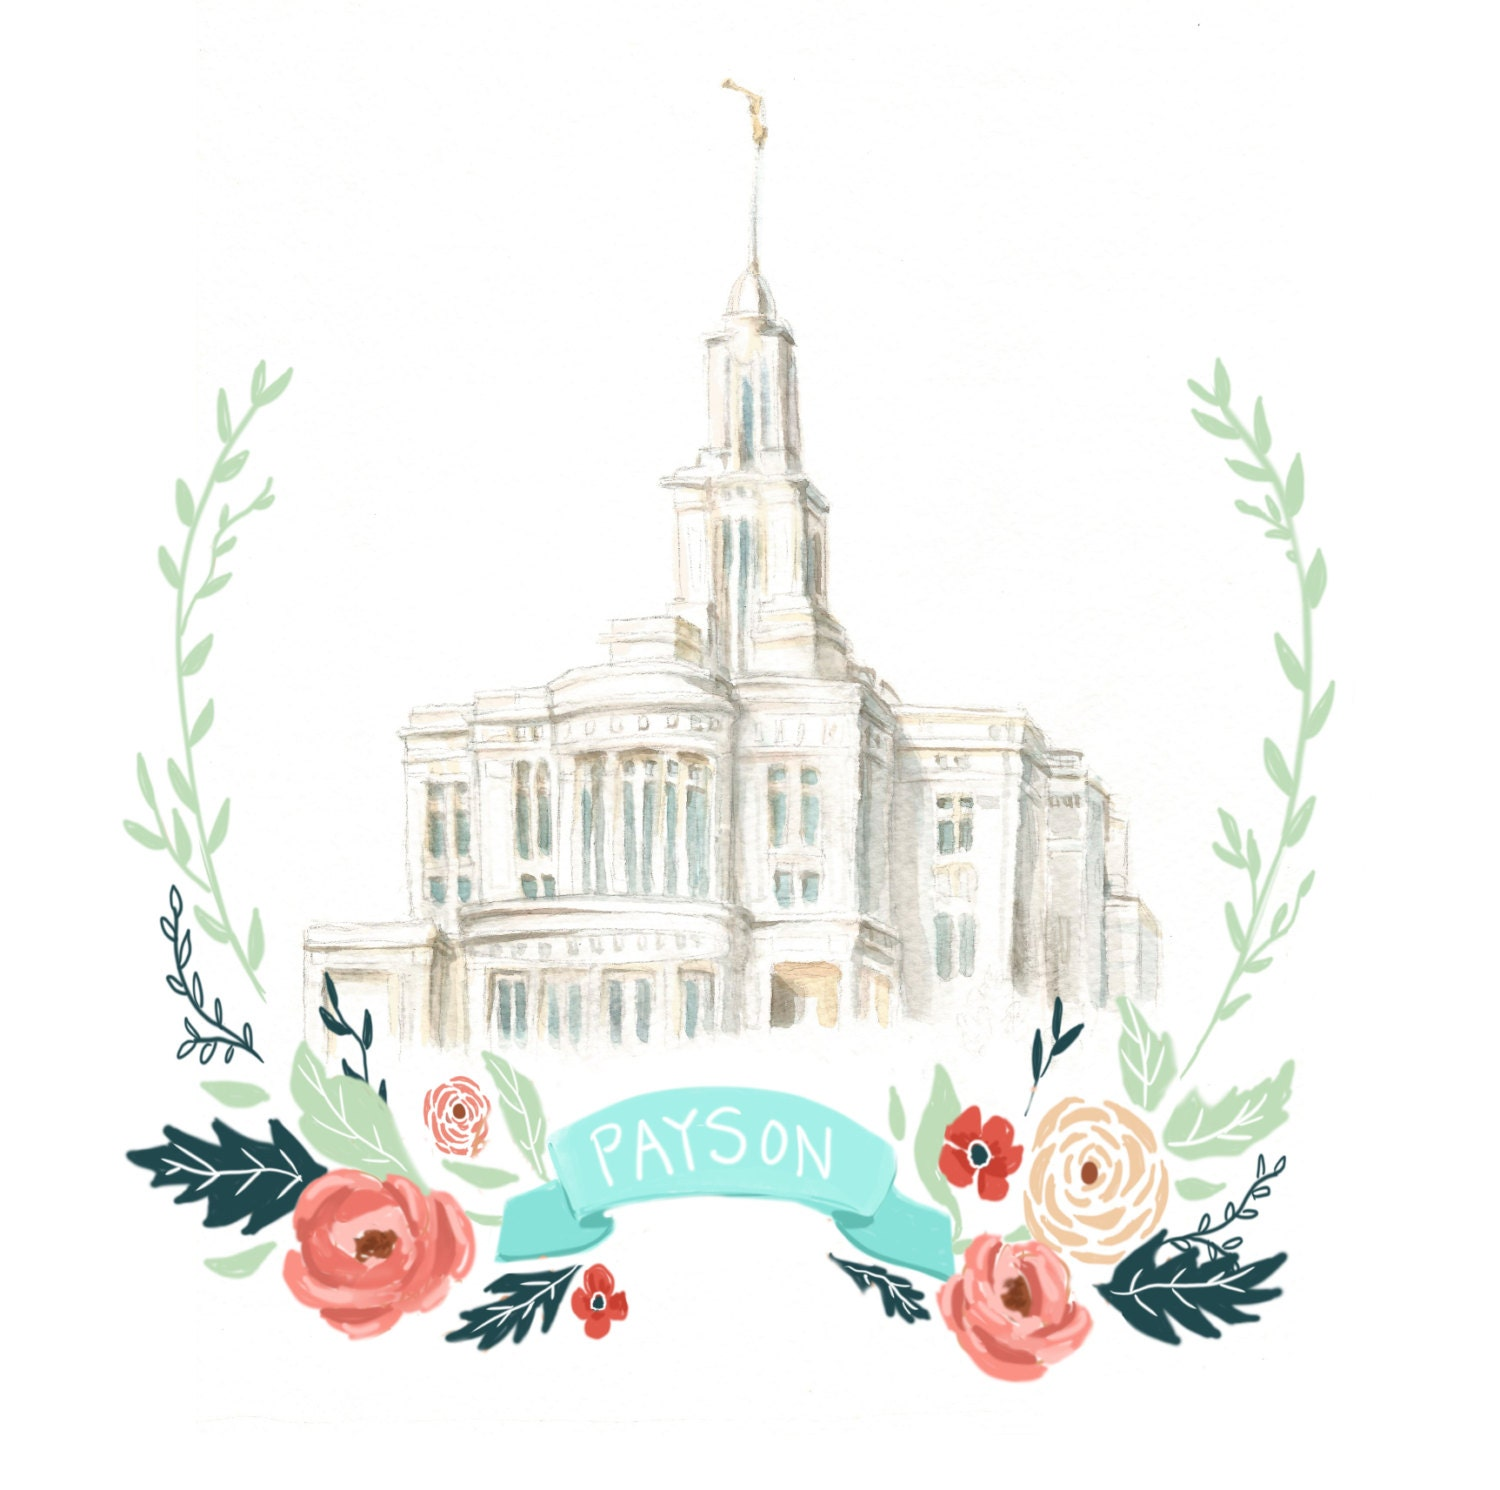 Church flower clipart church flower image church flowers graphic -  Zoom